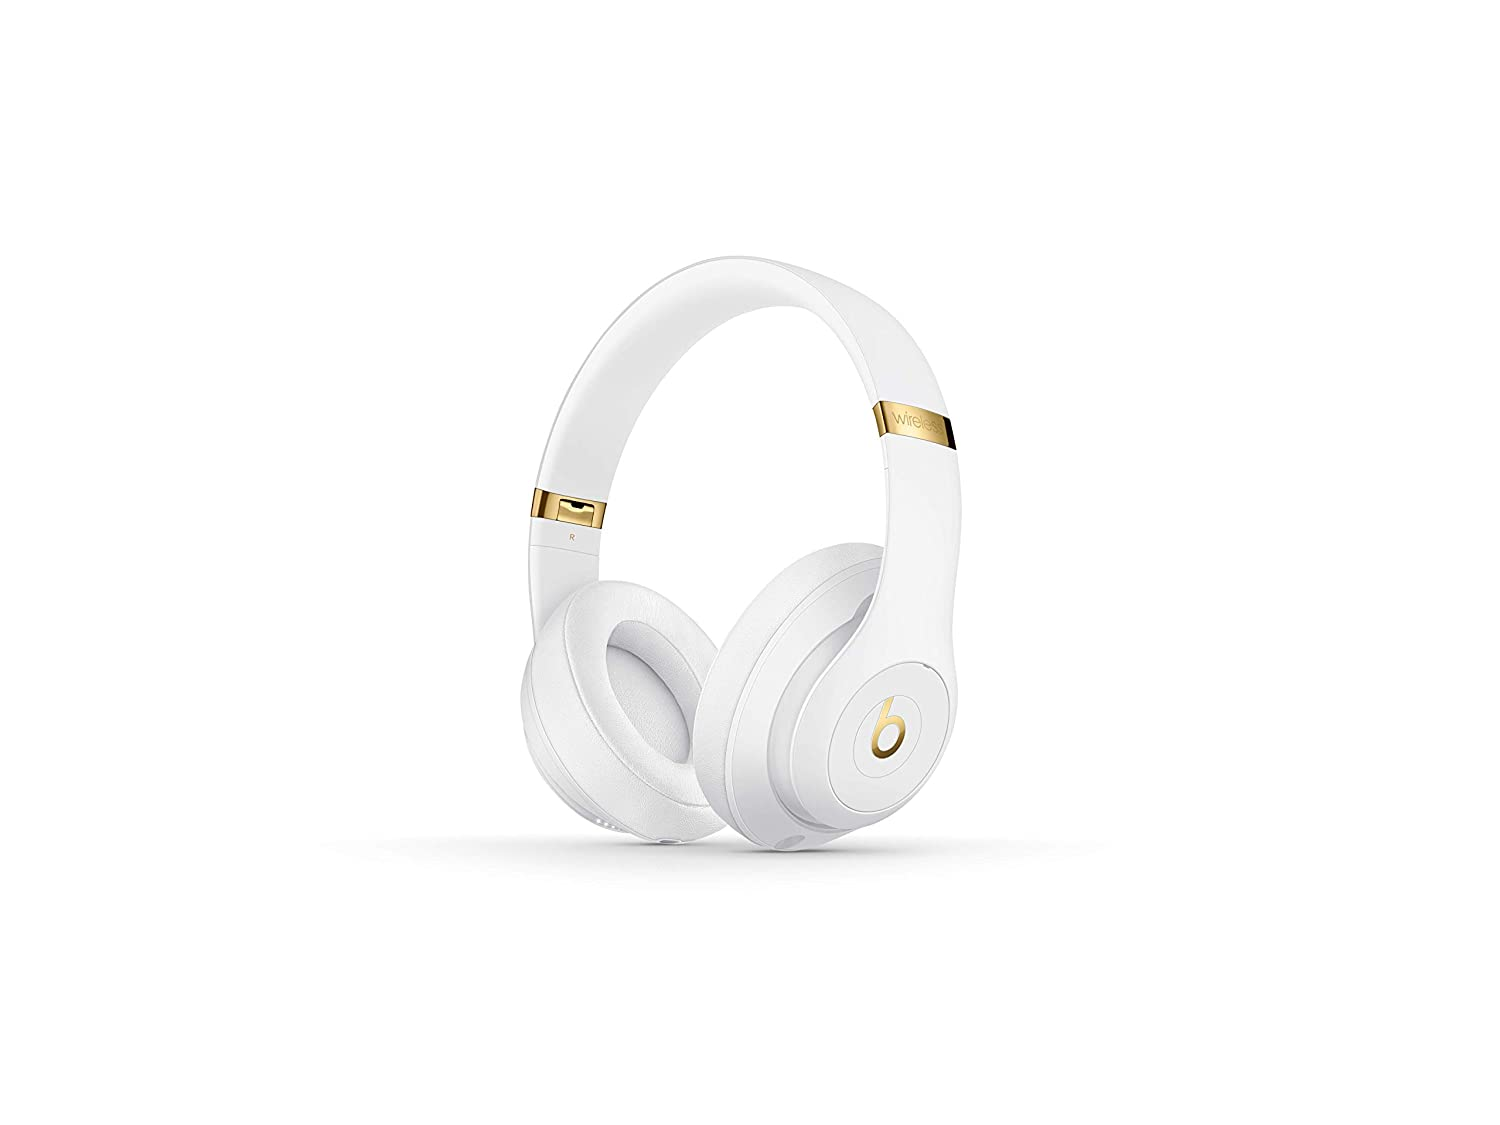 Buy Beats Studio3 MQ572LL A Wireless Headphones (White) Online at Low Prices  in India - Amazon.in 5854223f99